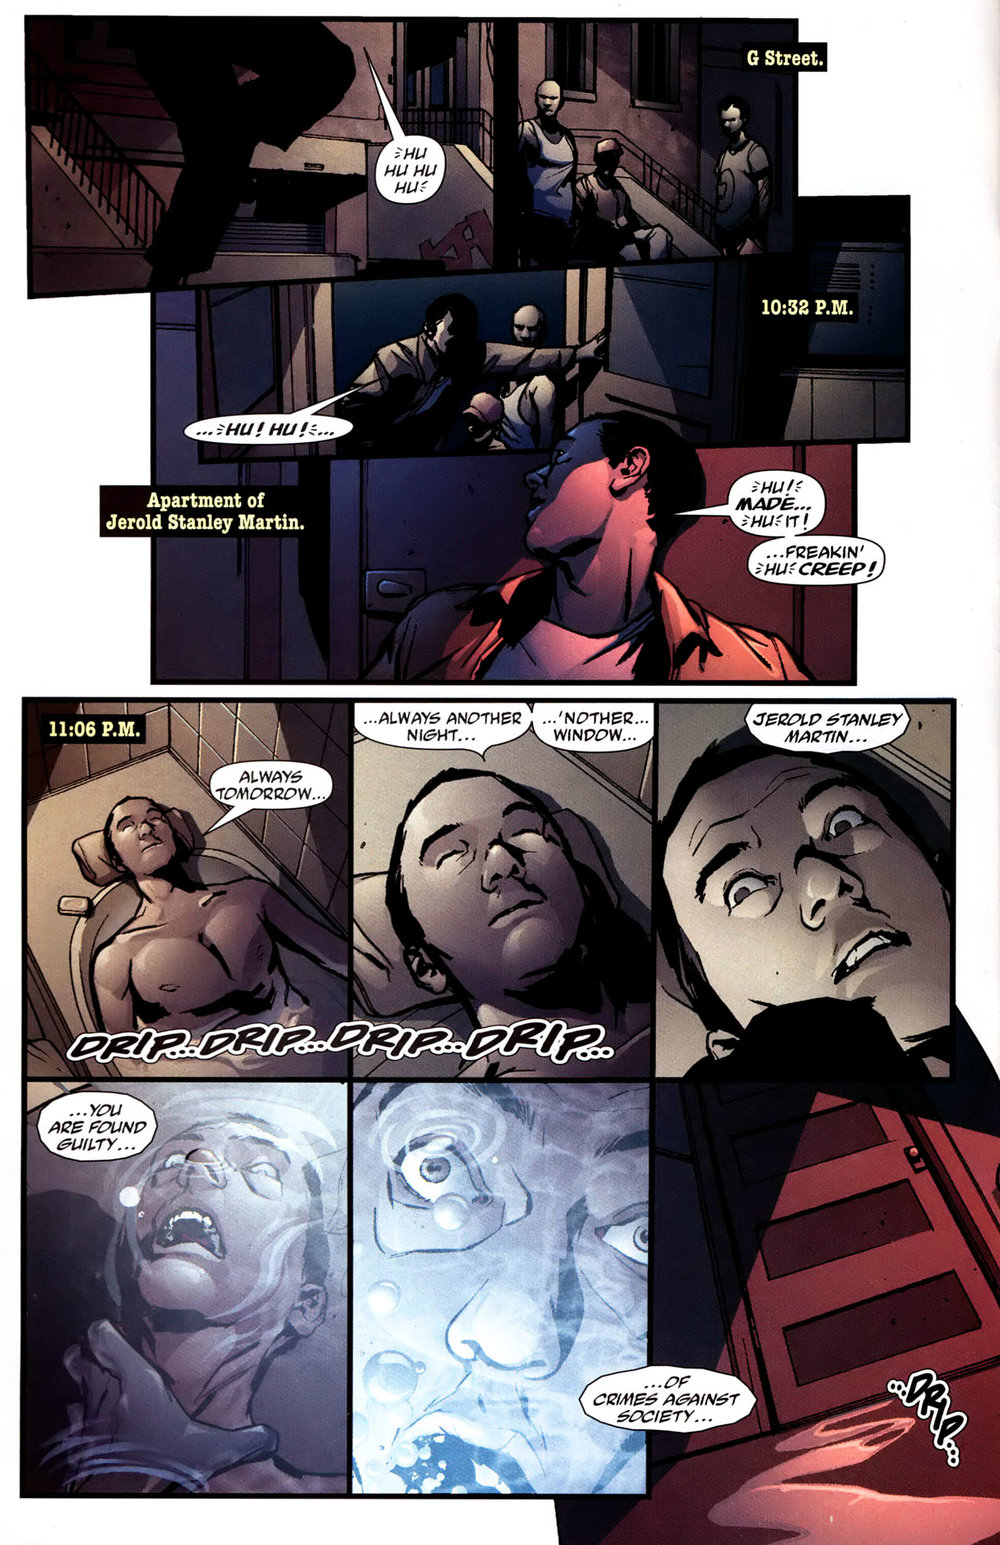 Vigilante (2005) #1 pg.06, lettered by Clem Robins.